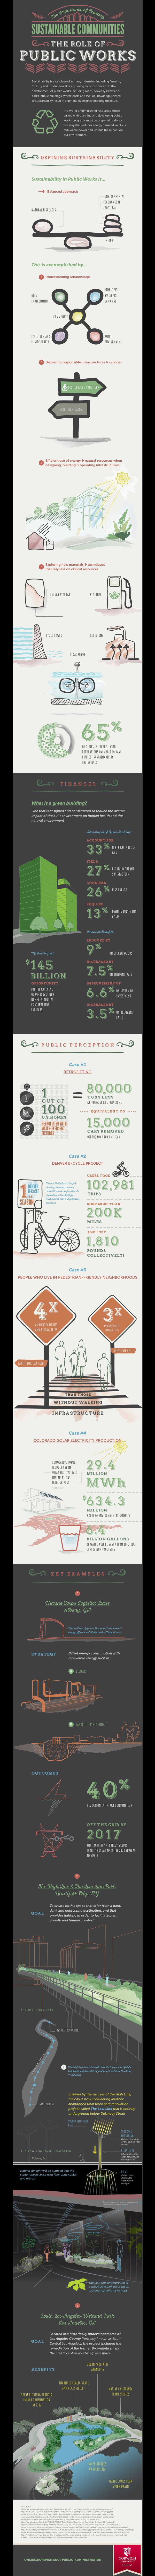 role of public works infographic image